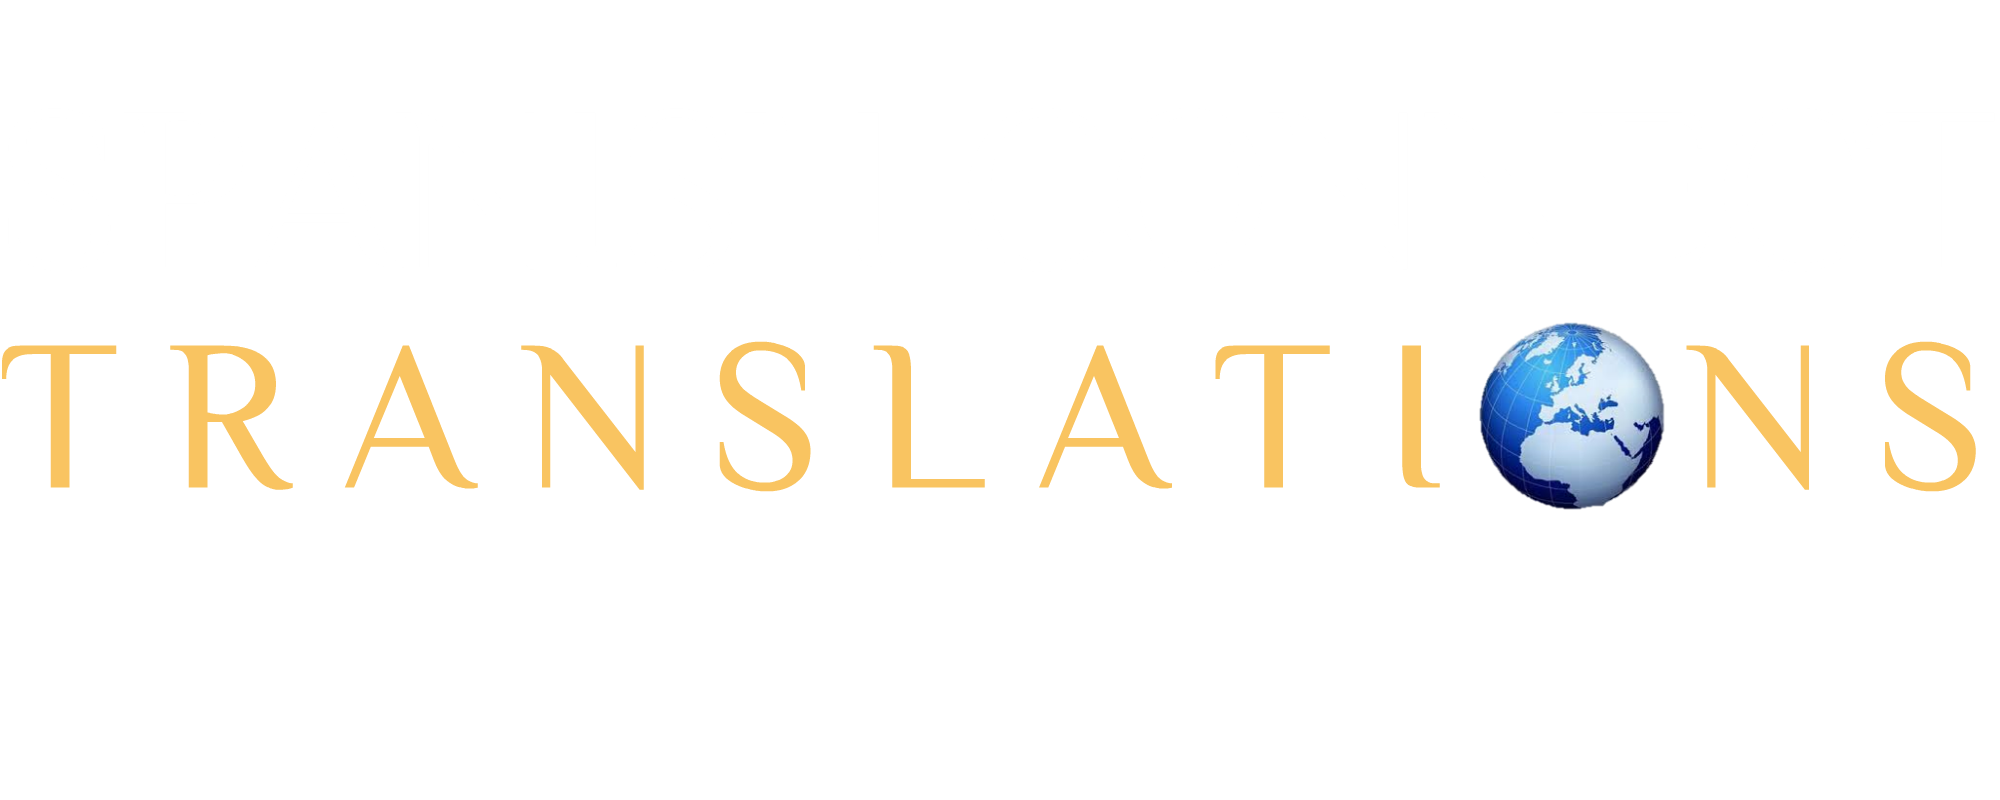 SPANISH CONNECT TRANSLATIONS